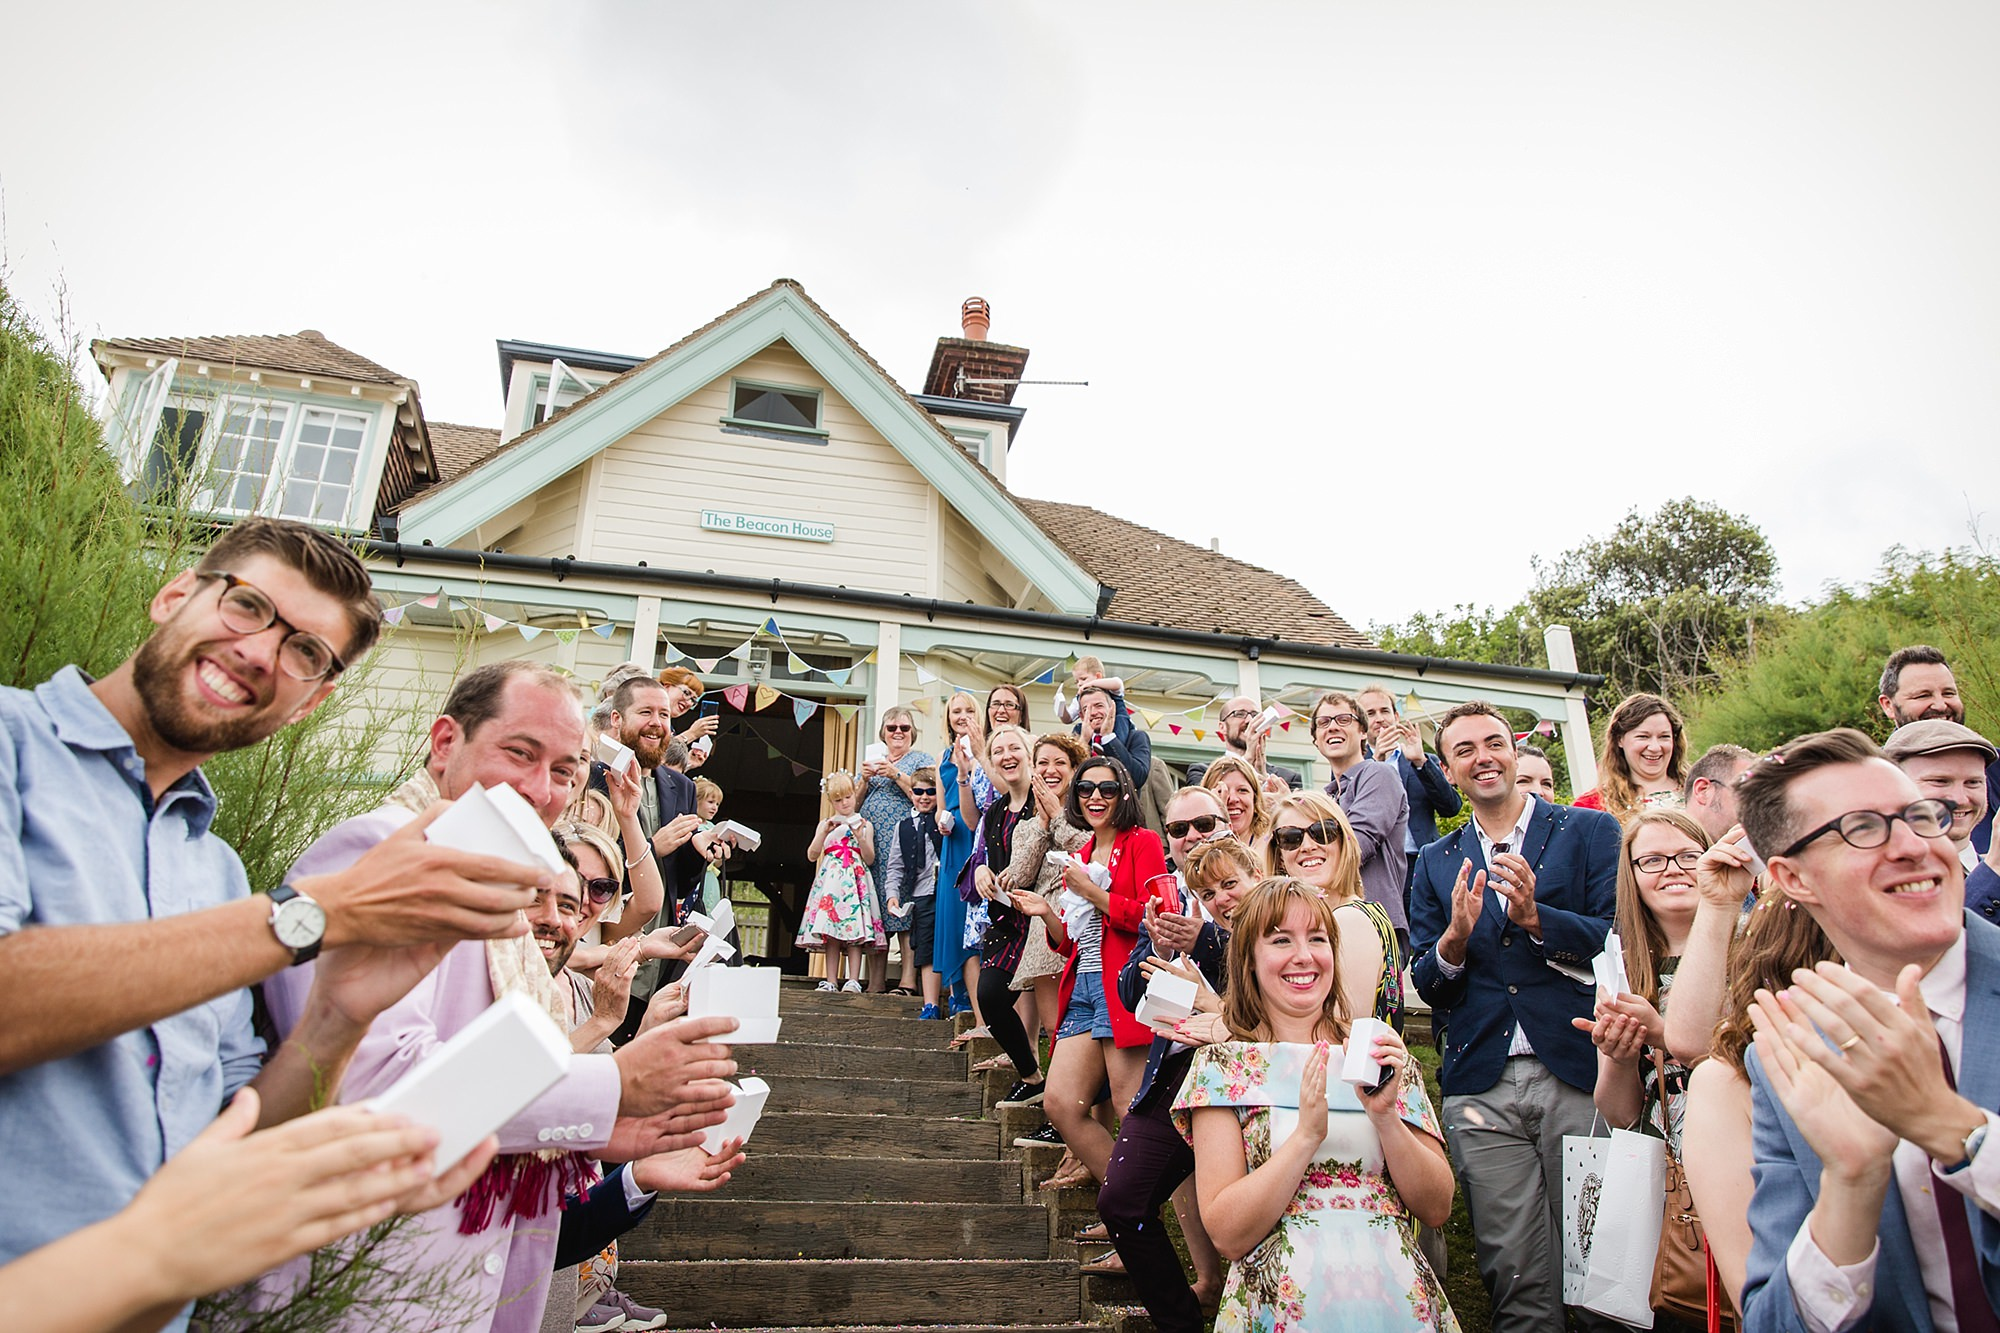 Beacon House wedding guests cheer on bride and groom